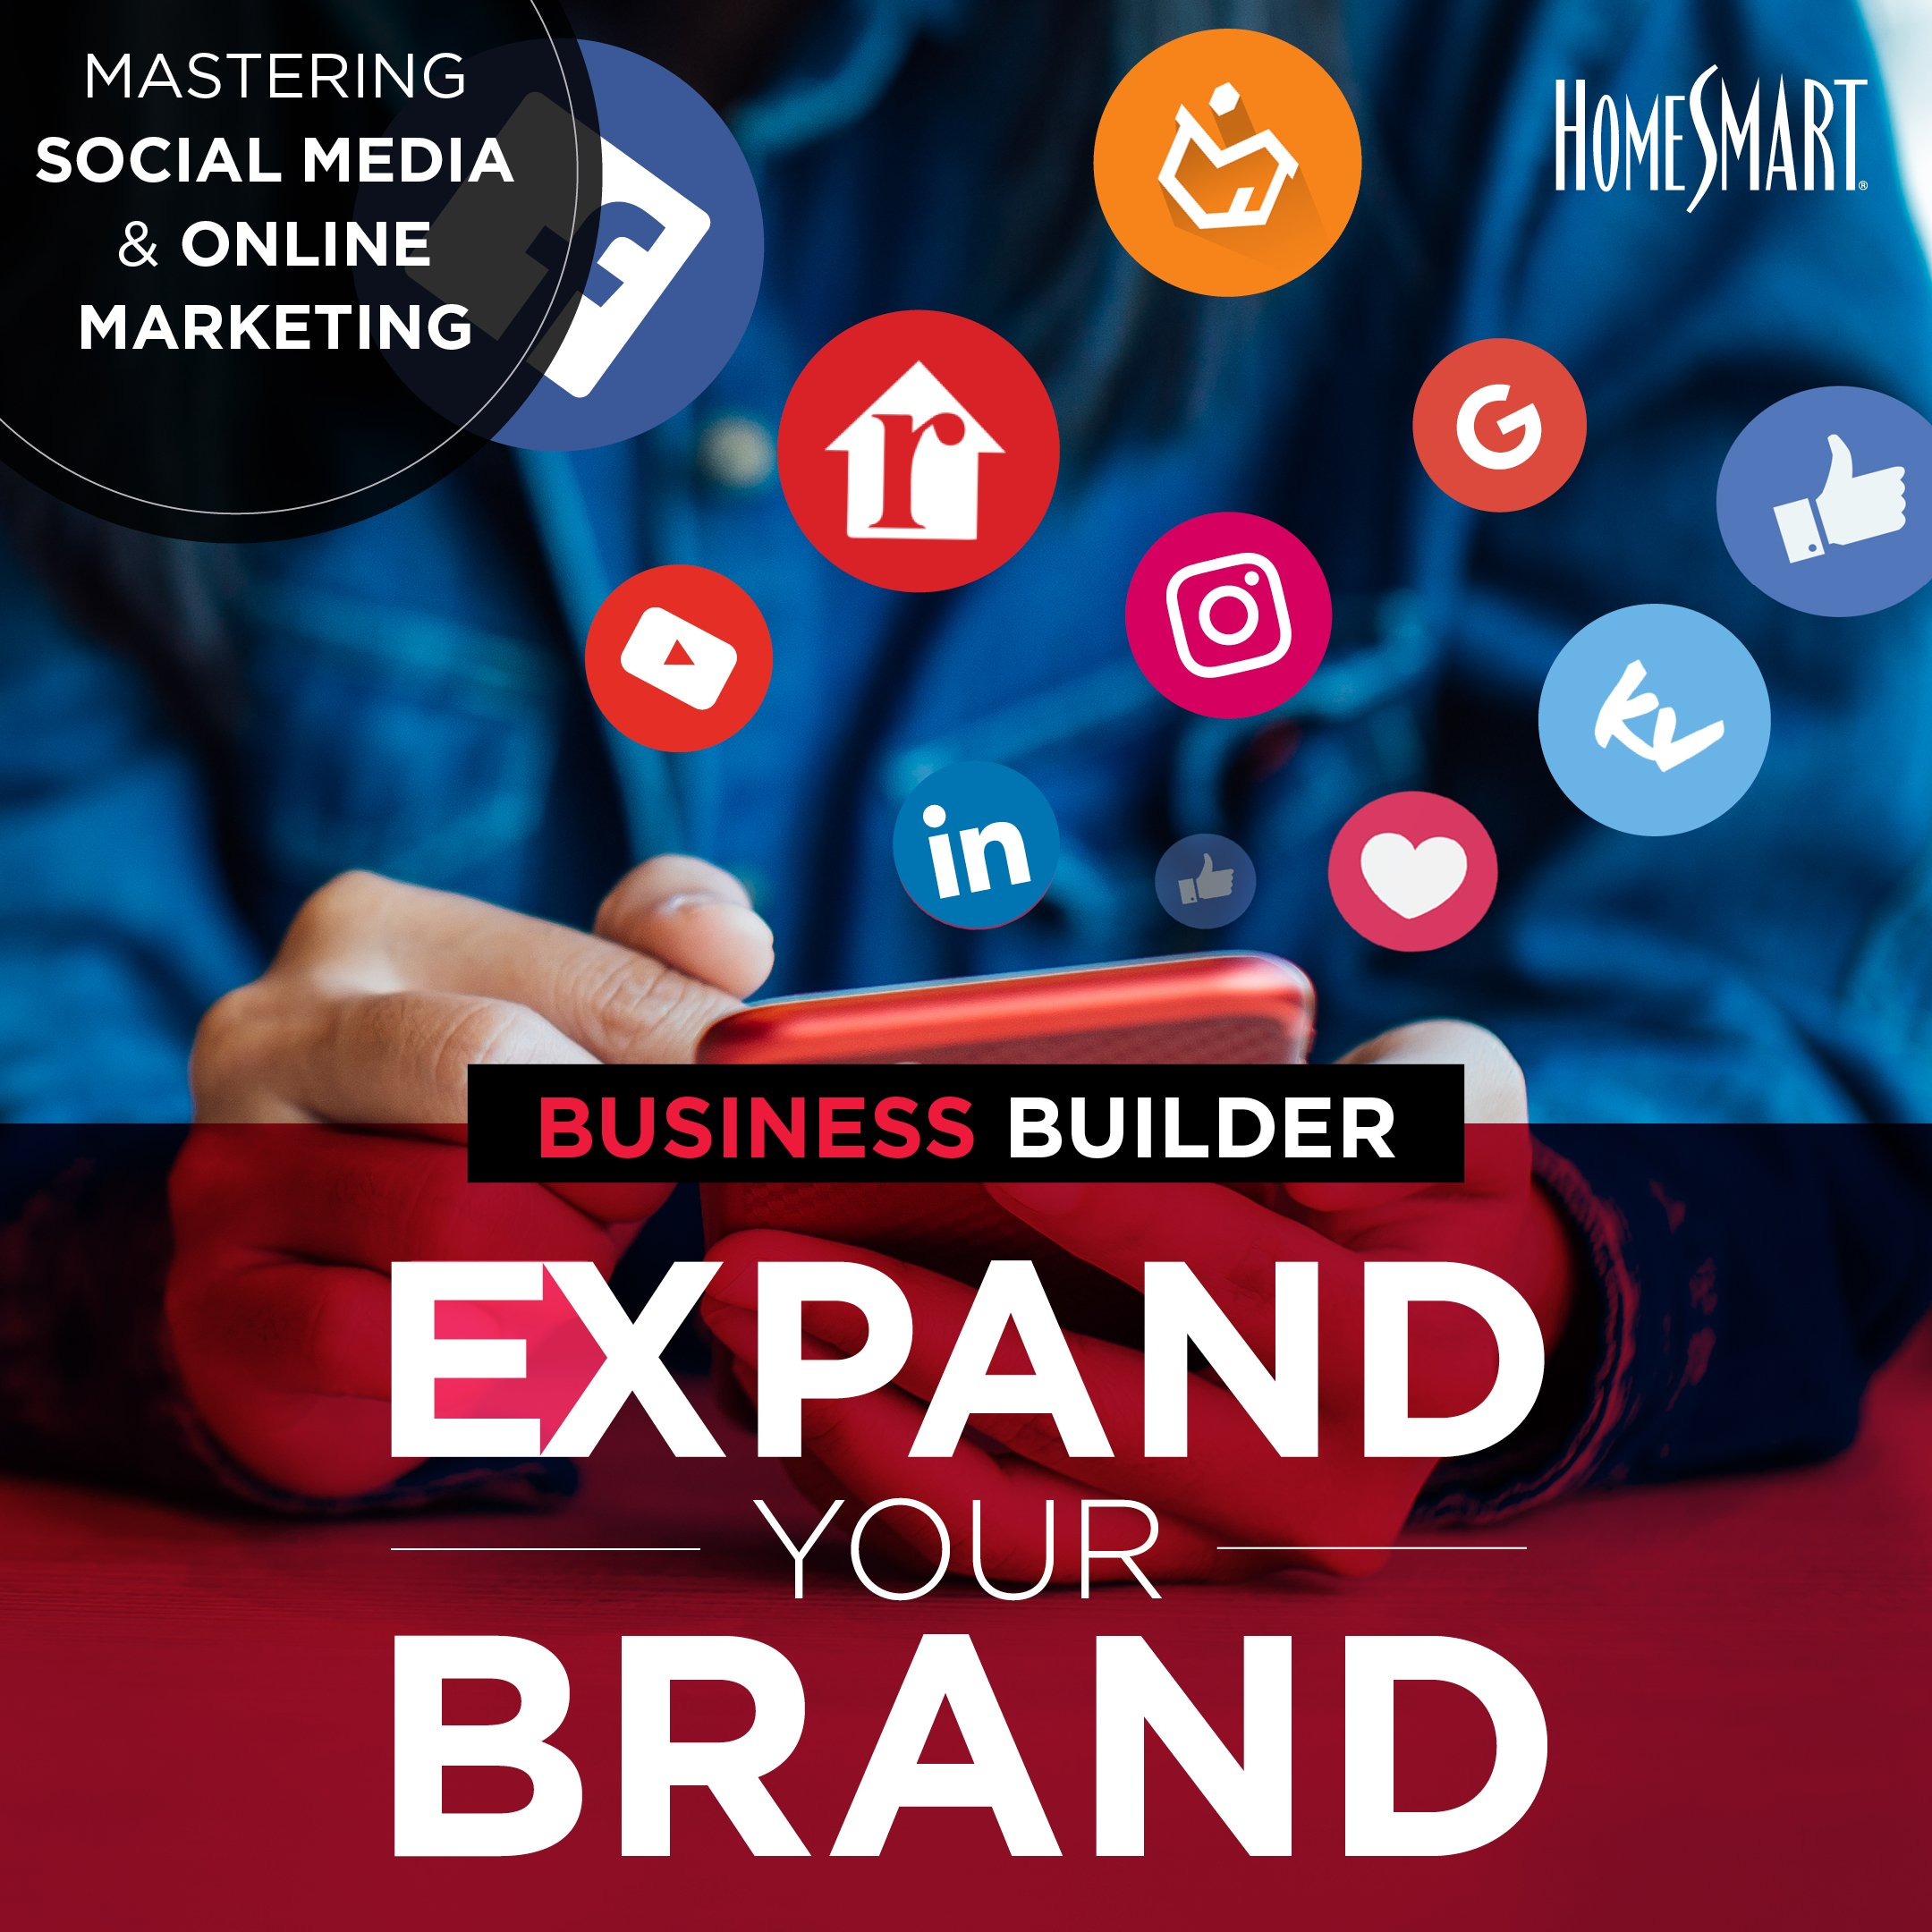 Expand Your Brand